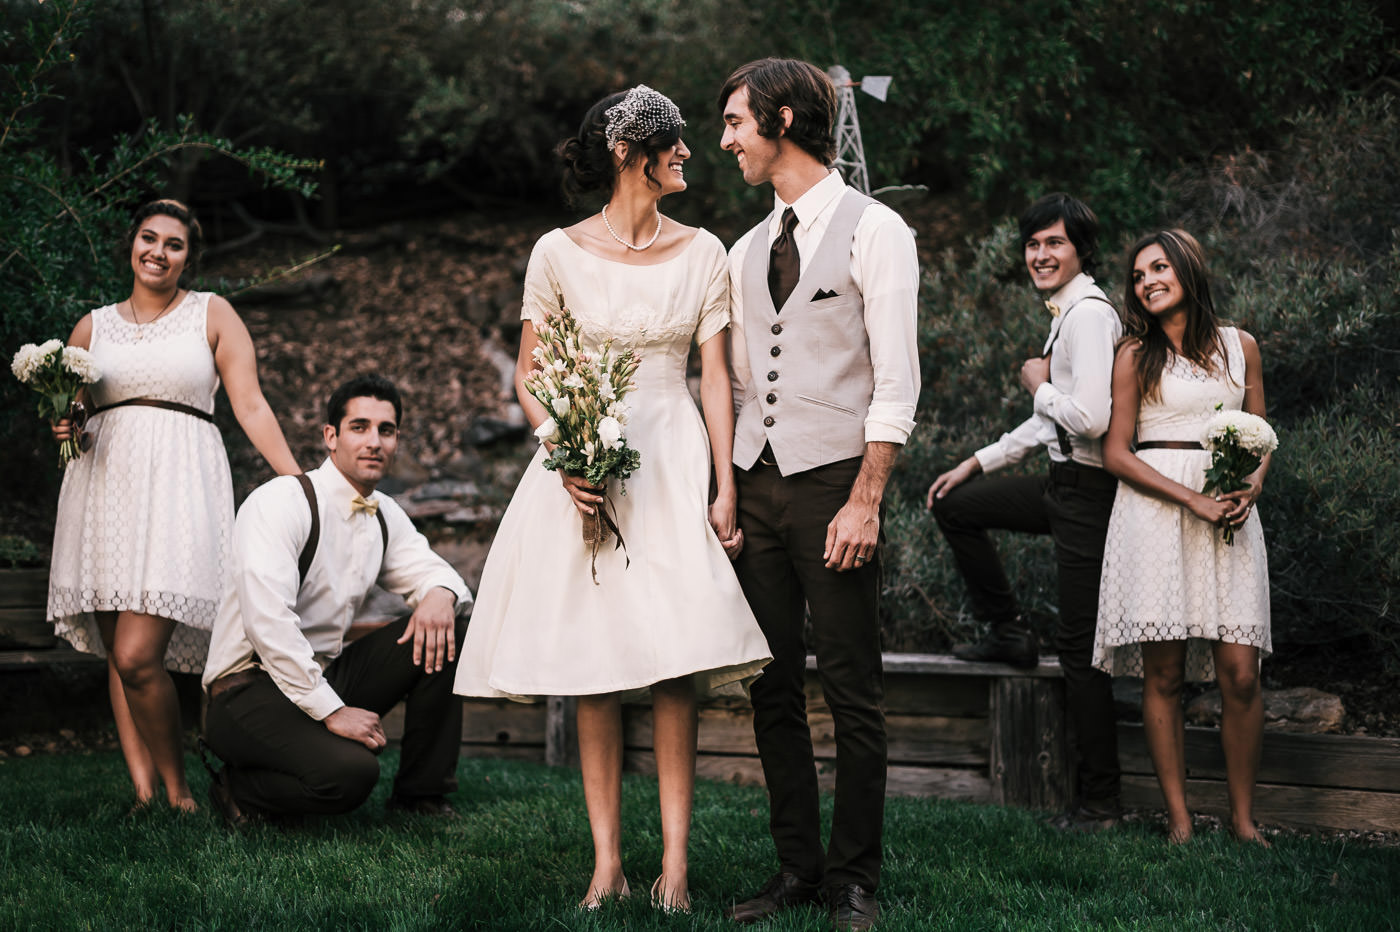 Classy vintage styled wedding party poses after a romantic temecula wine country wedding